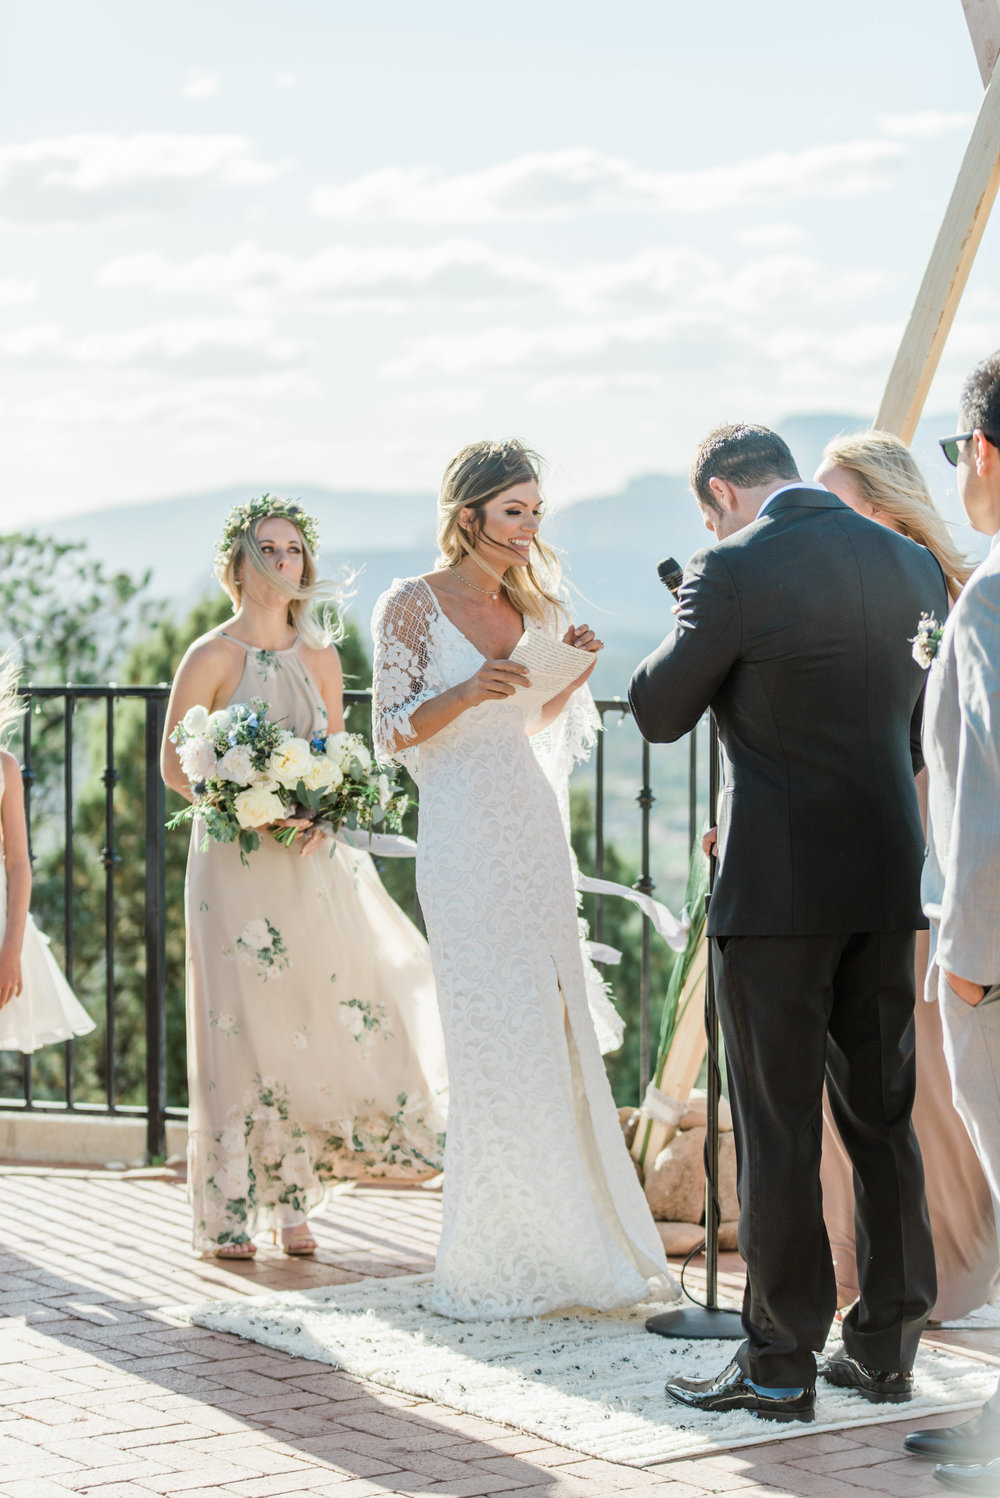 Boho Sedona Wedding - Ceremony